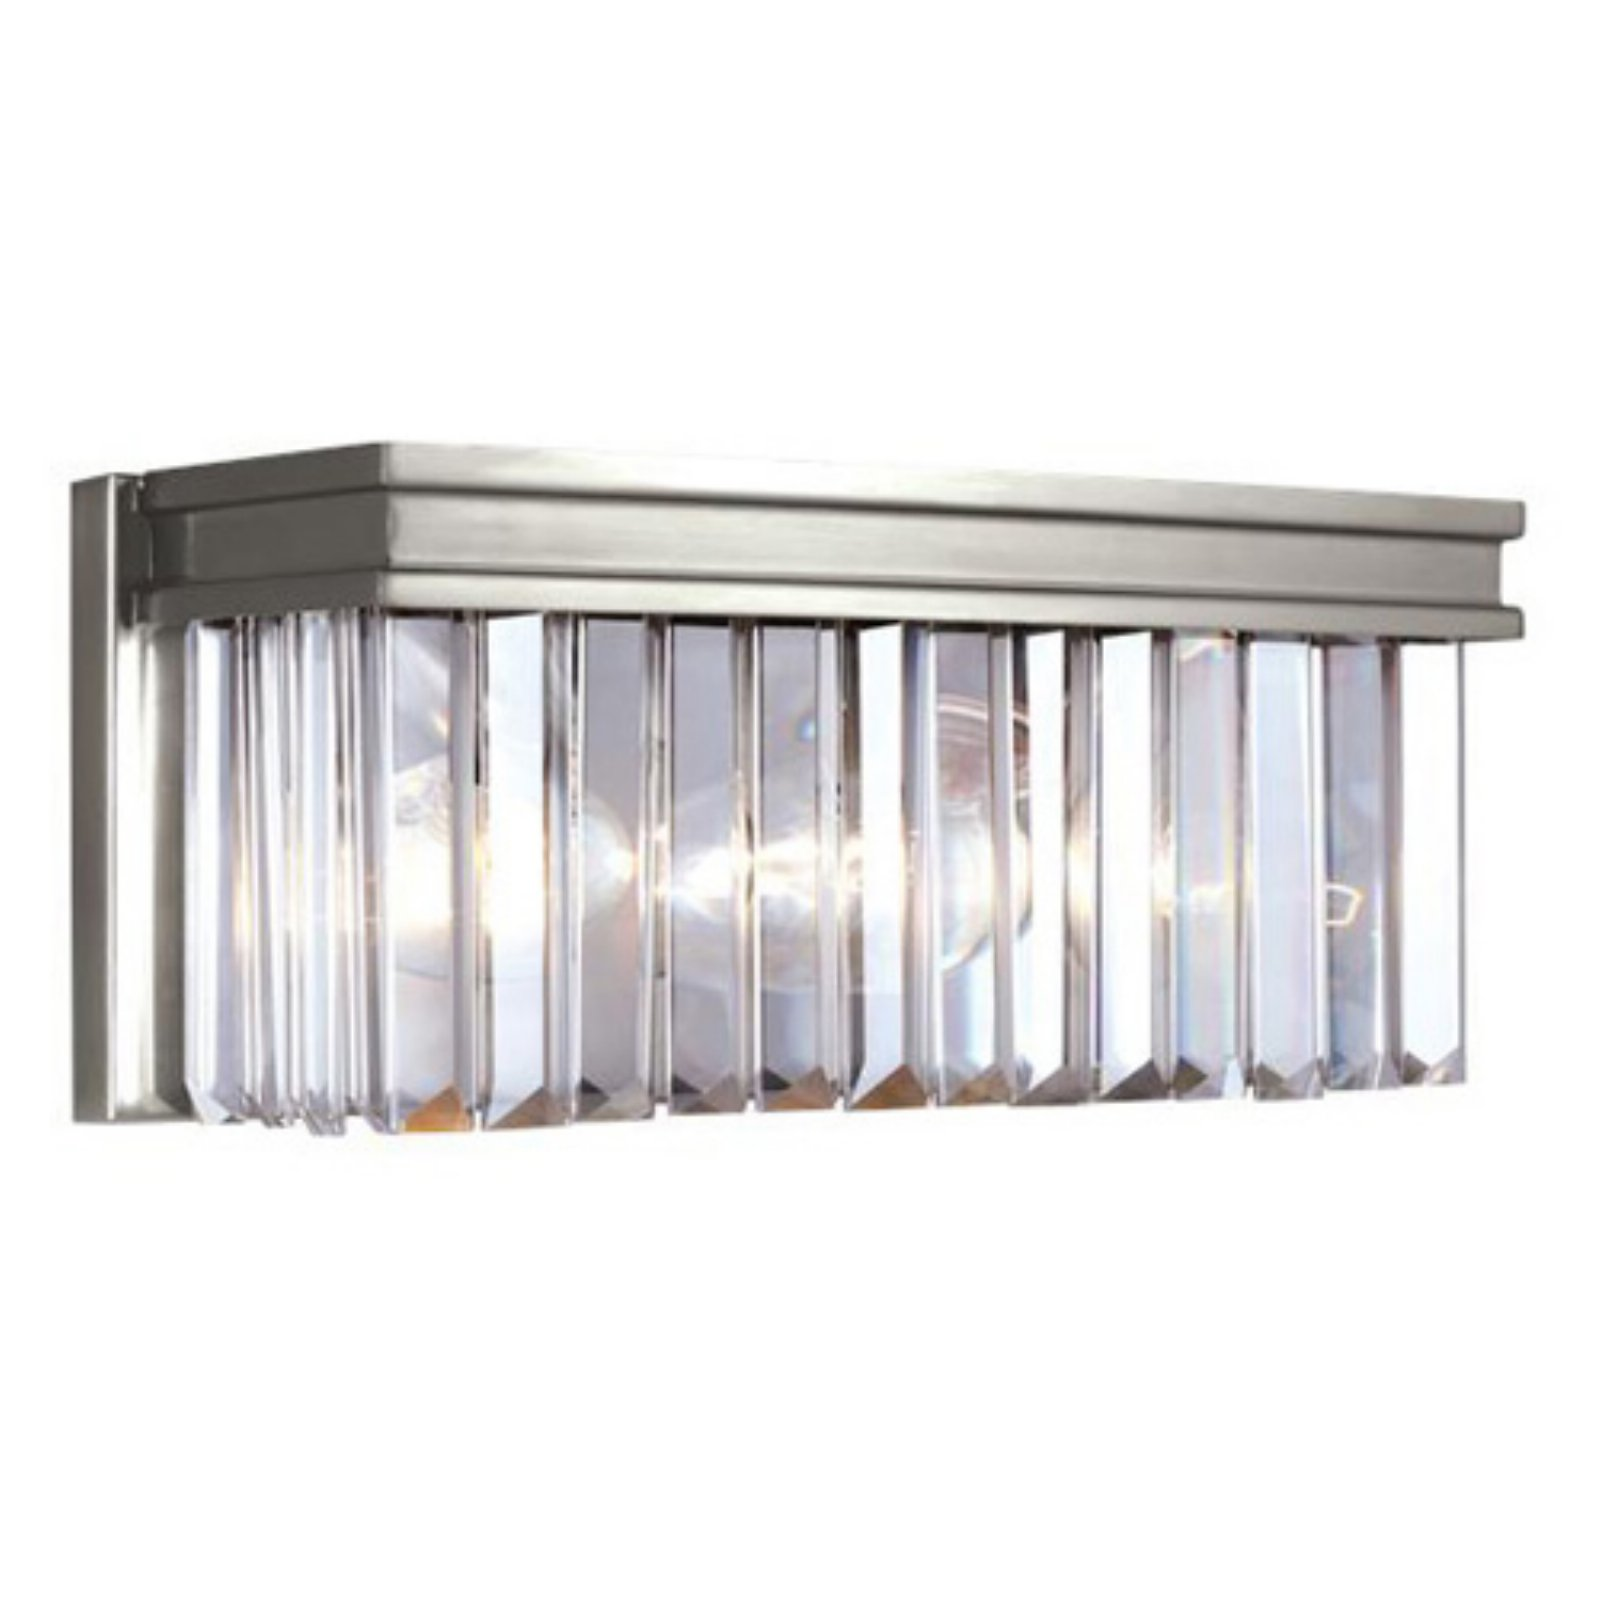 Sea Gull Lighting Carondelet 4414002EN3 Bathroom Vanity Light